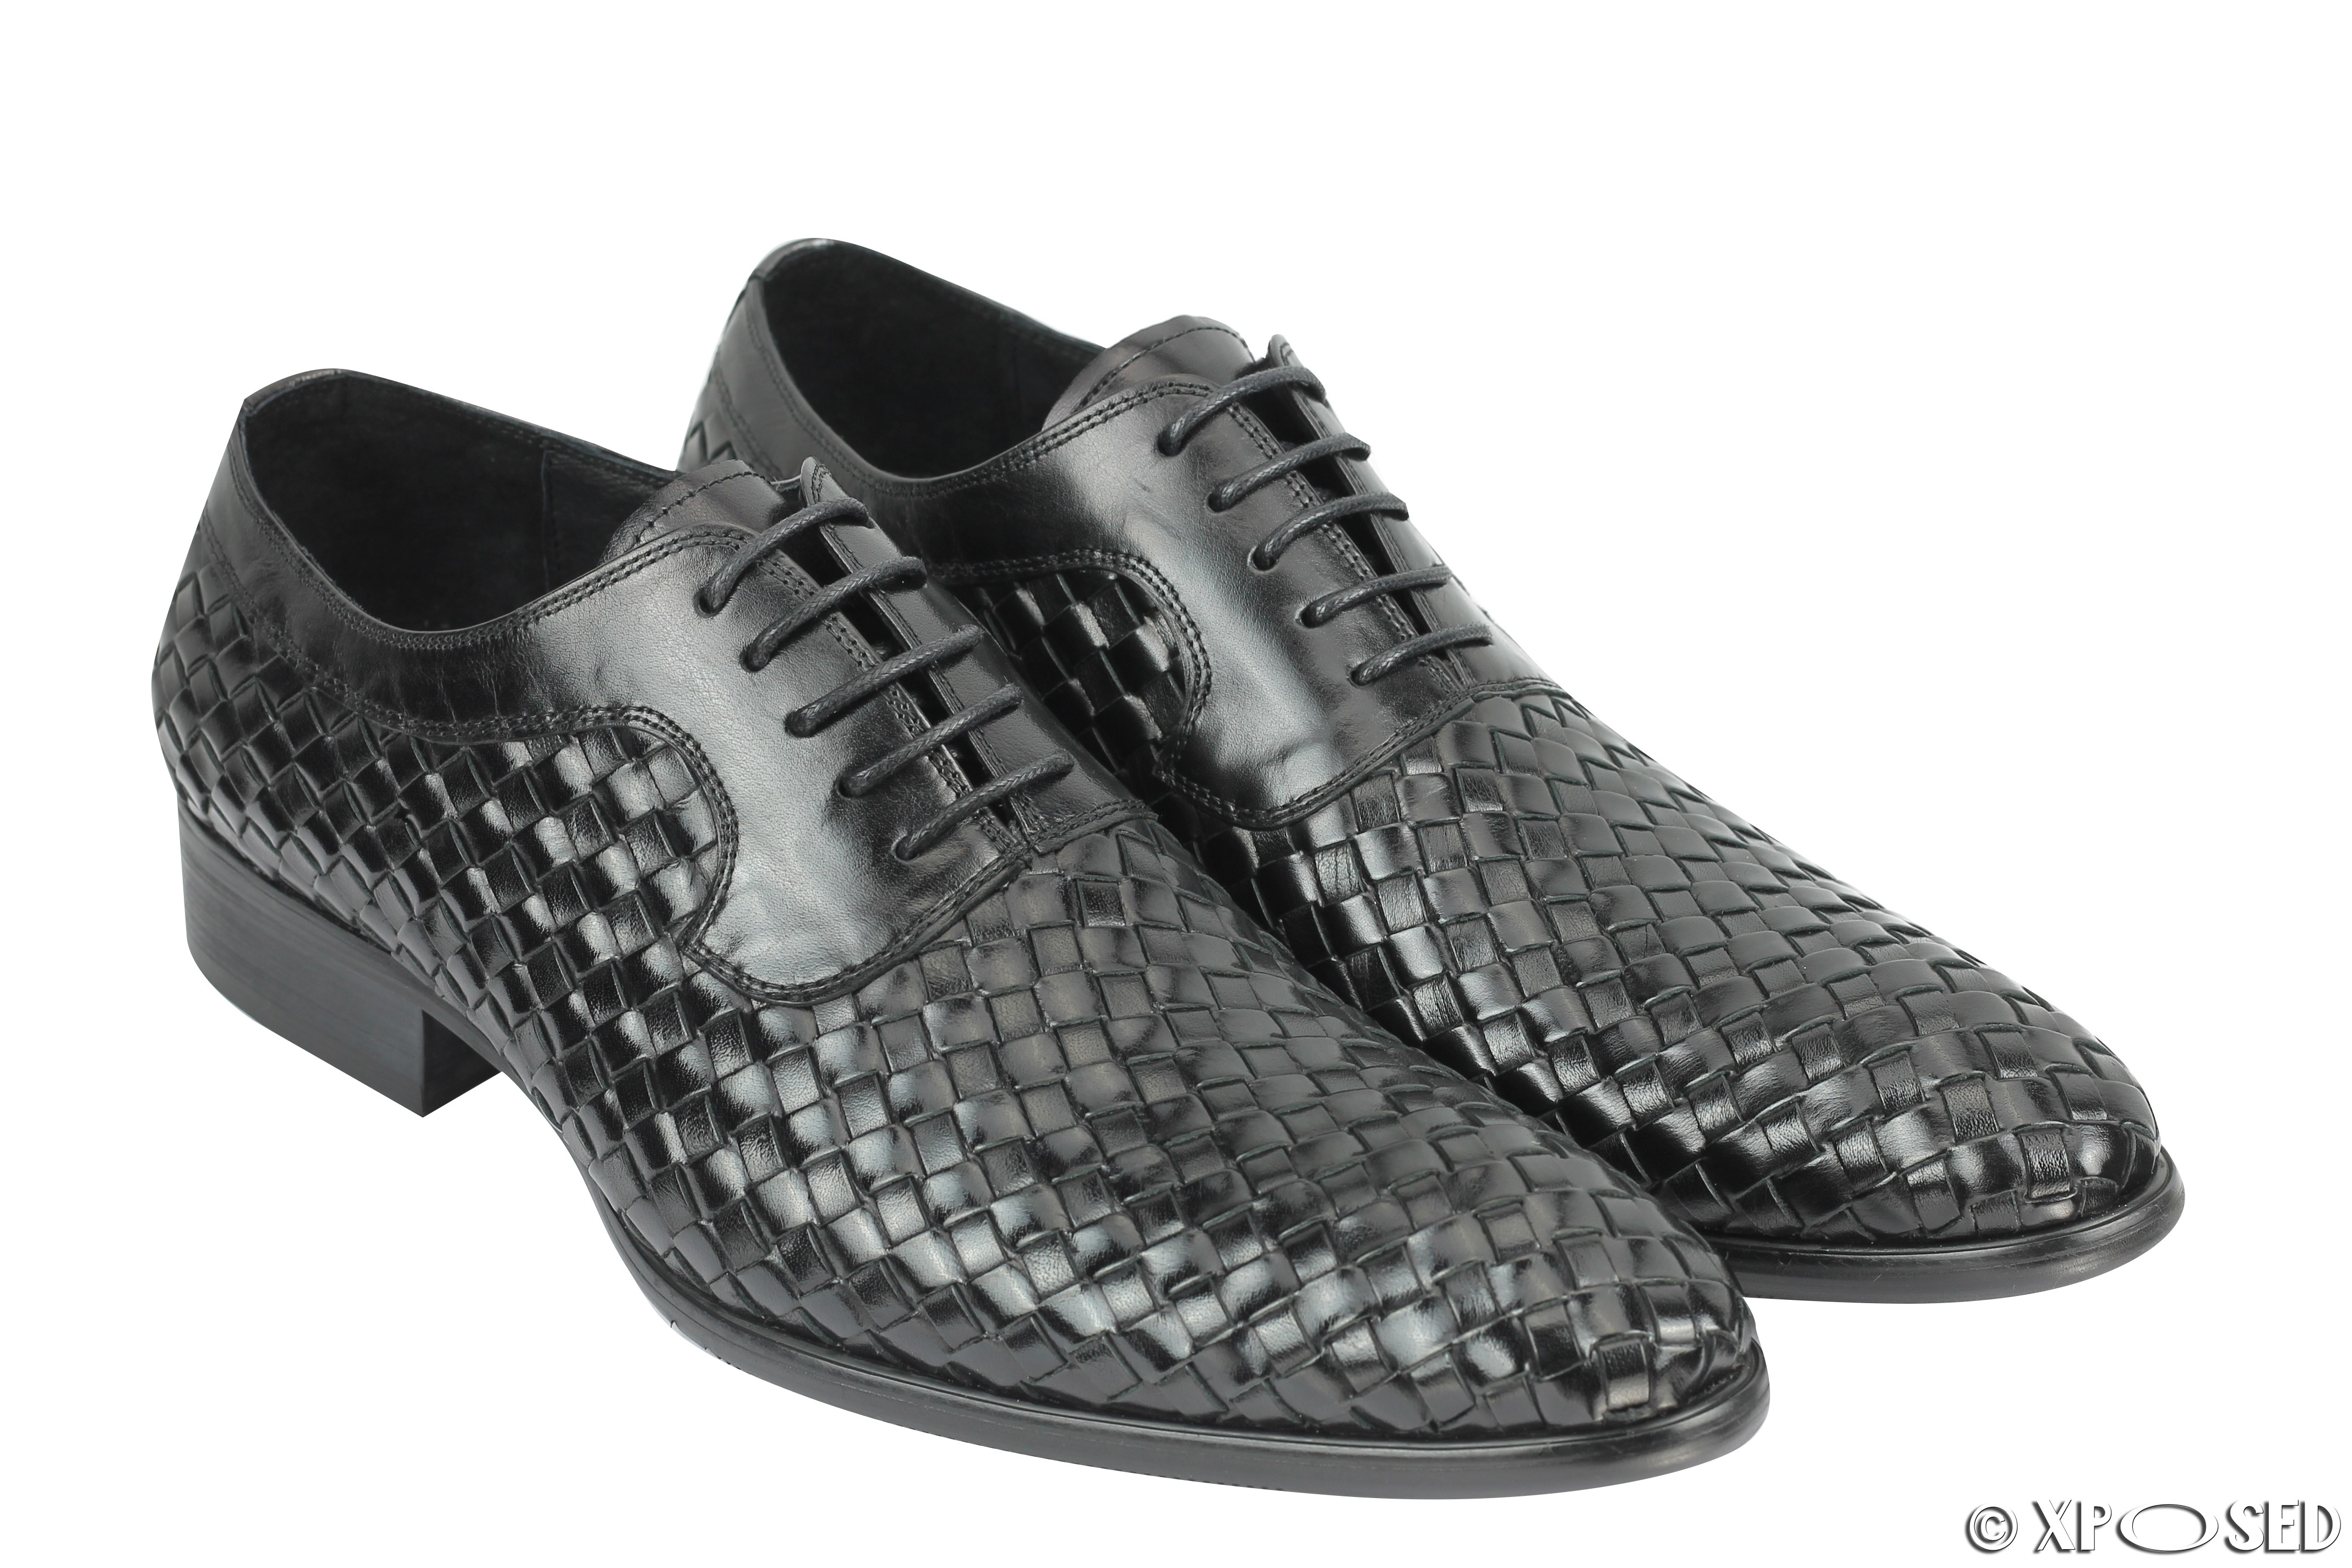 New Mens Woven Leather Shoes Size